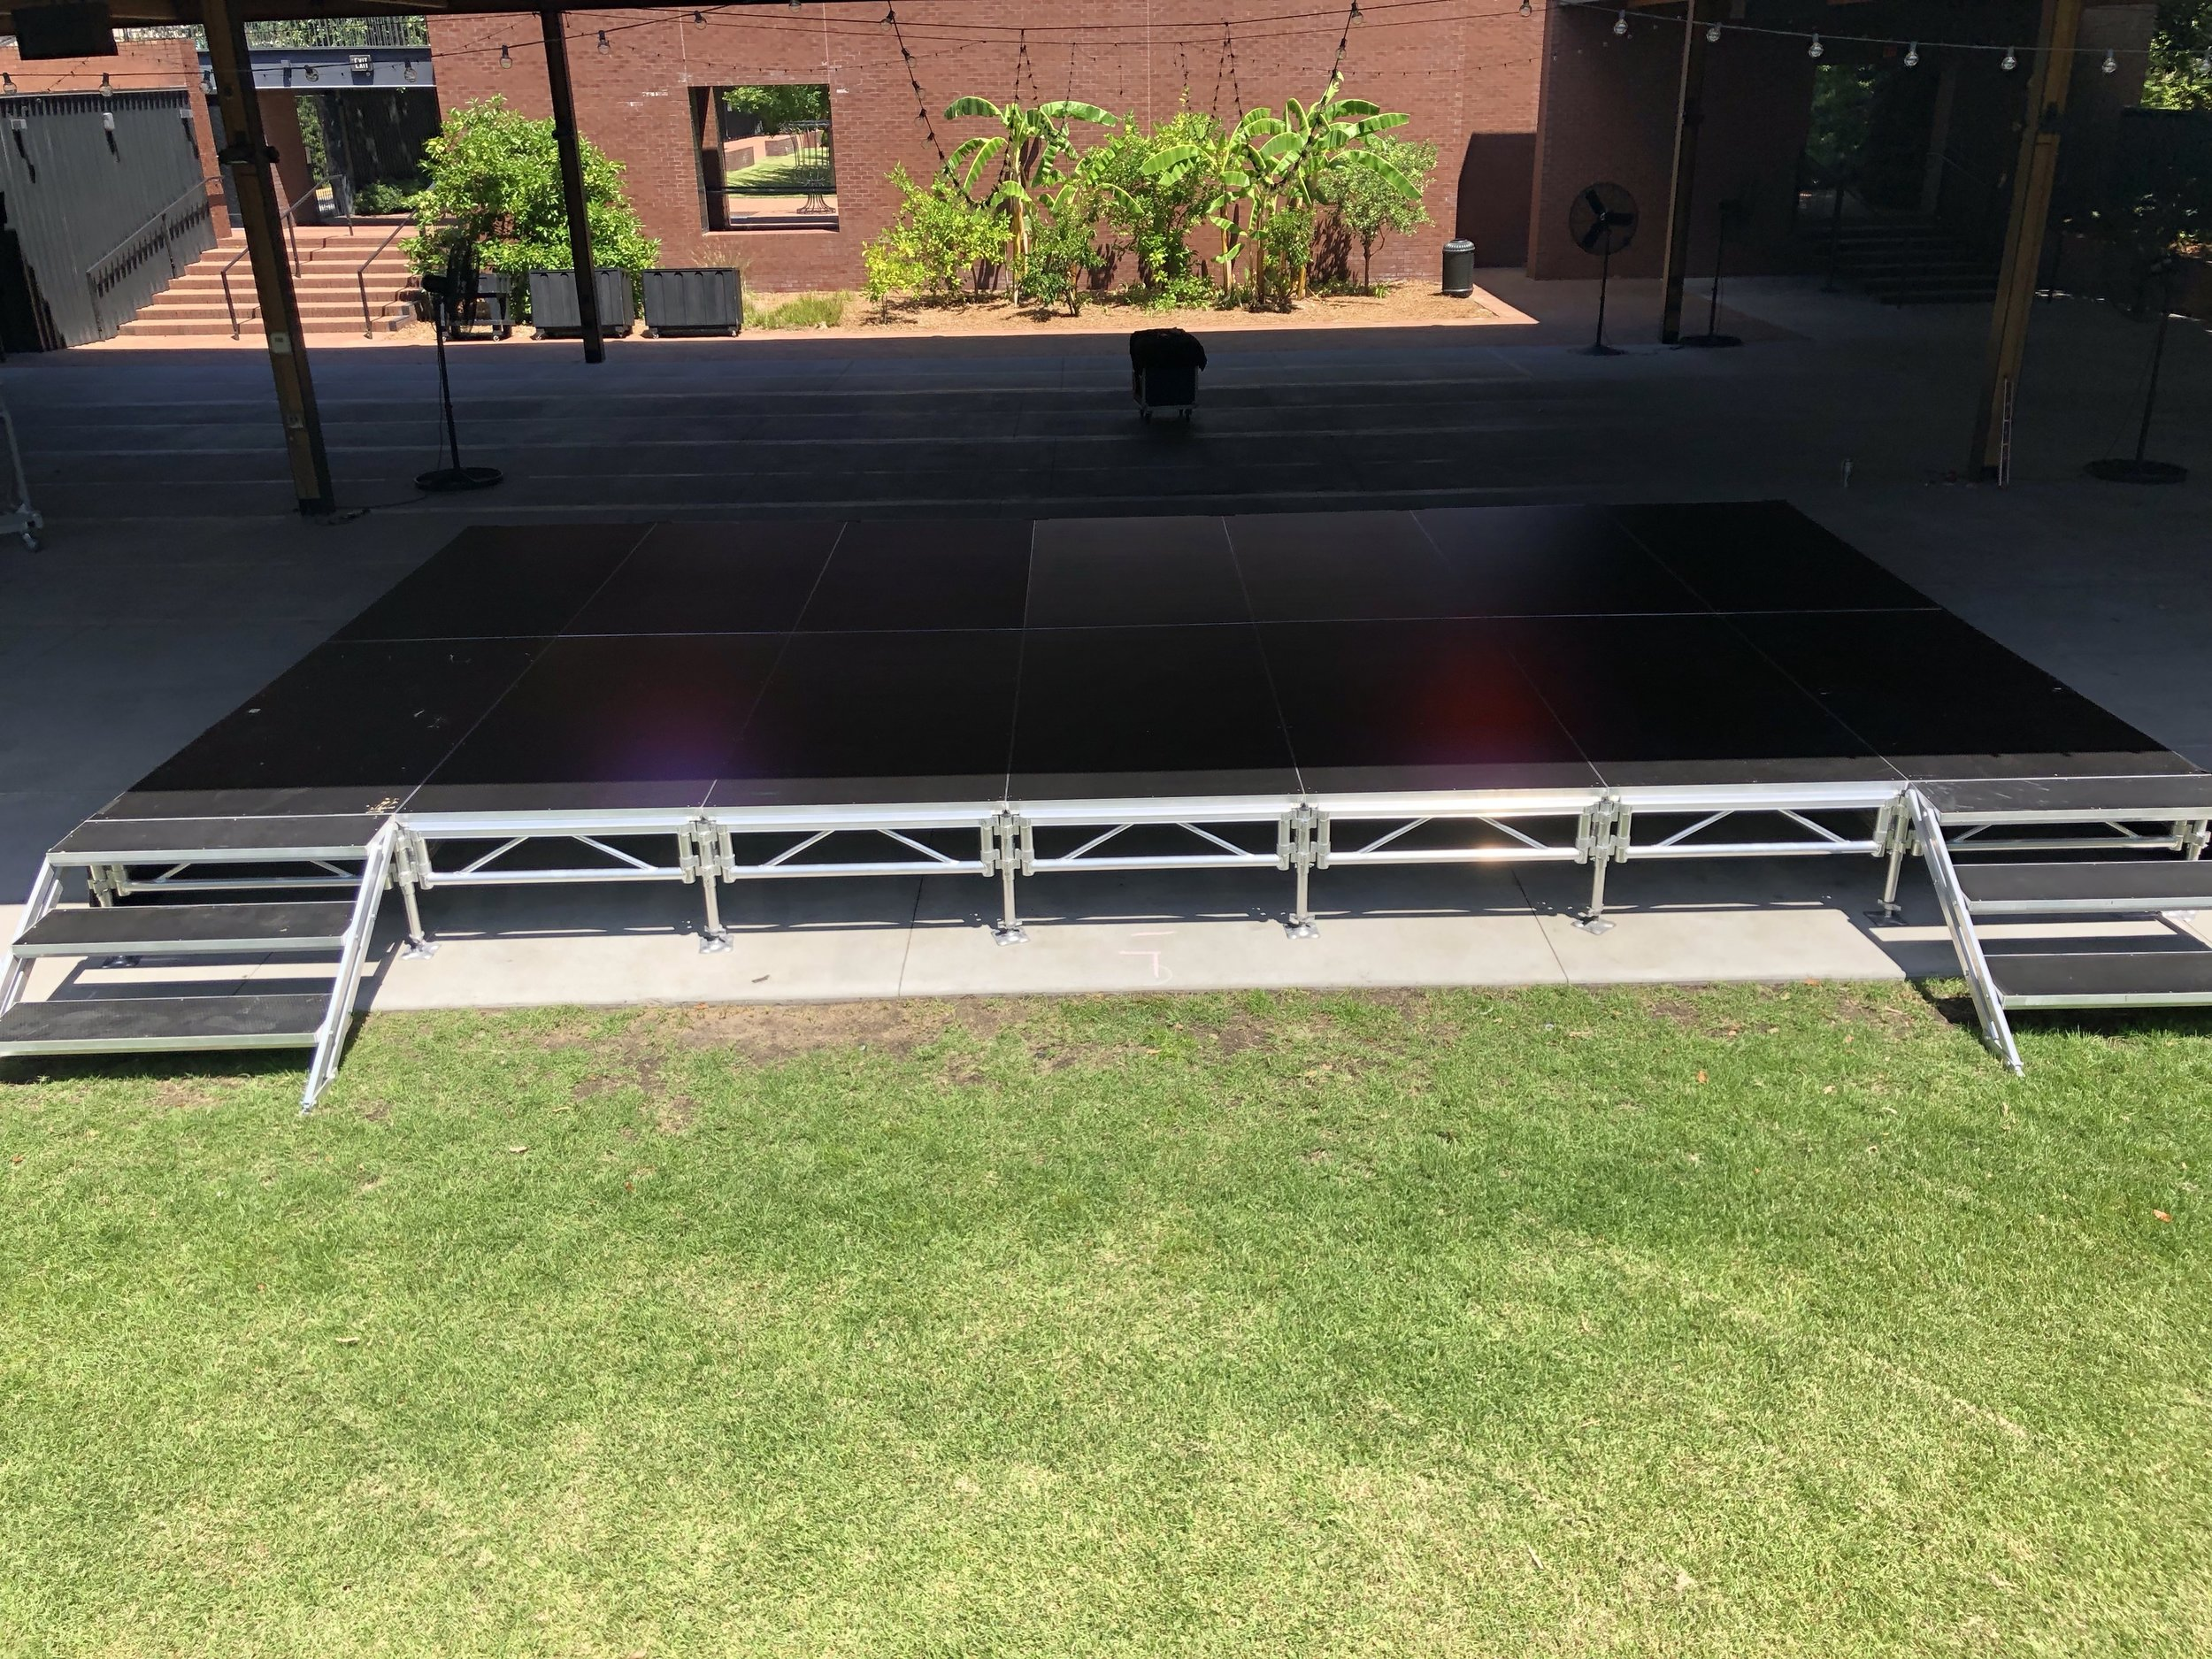 16x28 Stage (4x8 Sections)